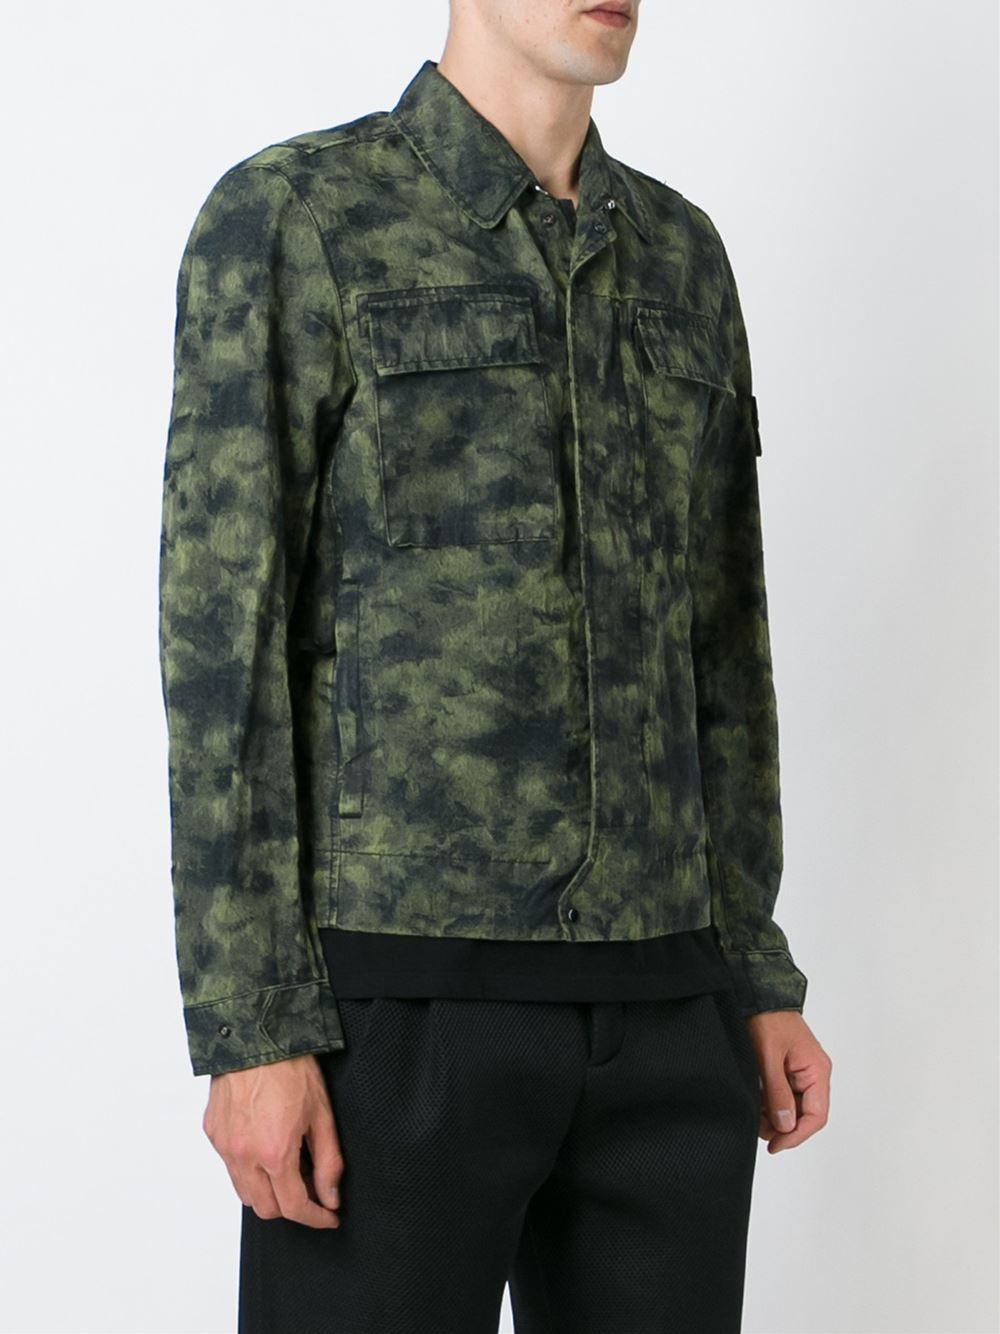 Find great deals on eBay for short military jacket. Shop with confidence.